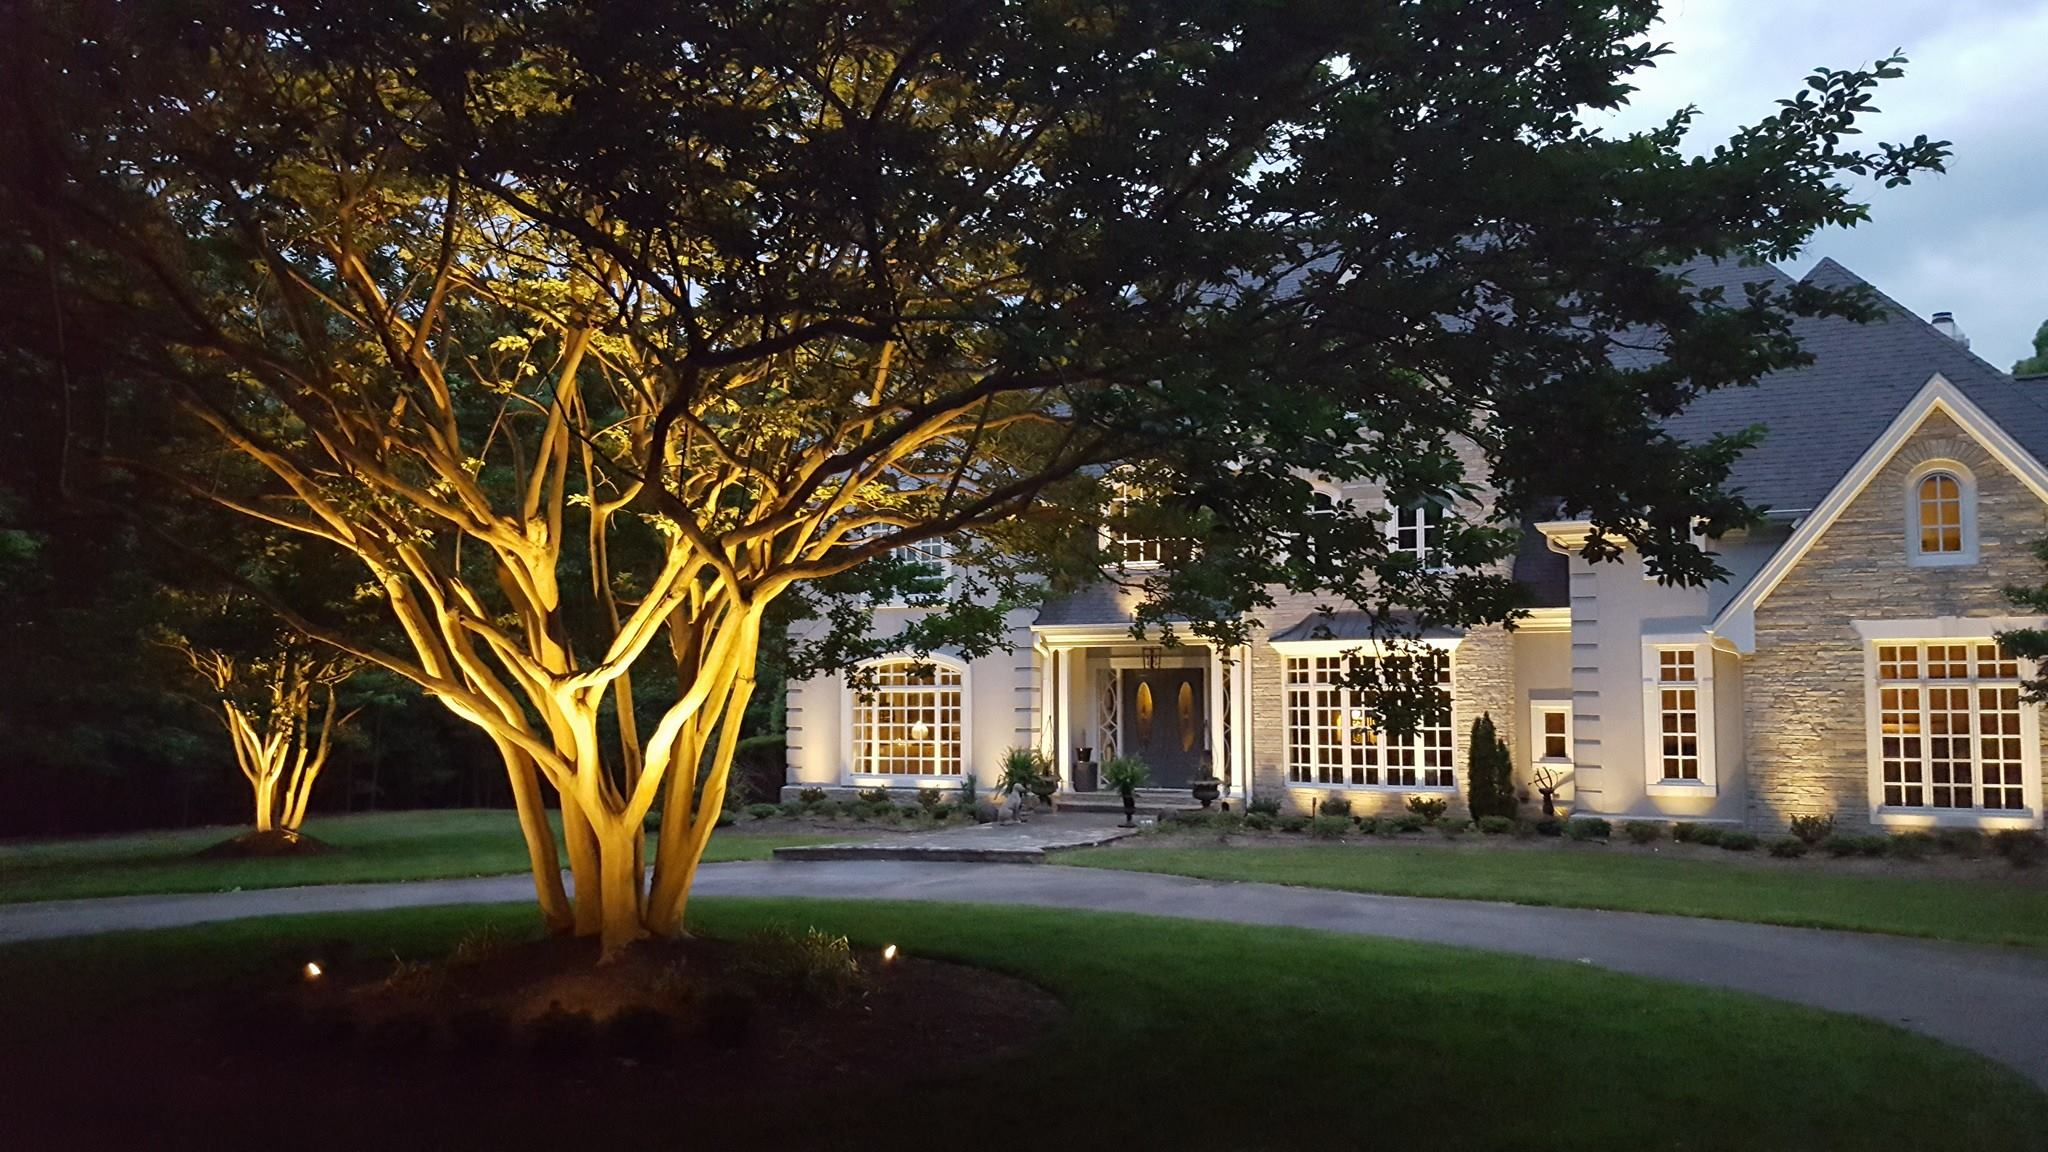 Our blog outdoor lighting perspectives whether youre looking to increase curb appeal extend the usability of your outdoor living areas or add safety and security to your home after dark aloadofball